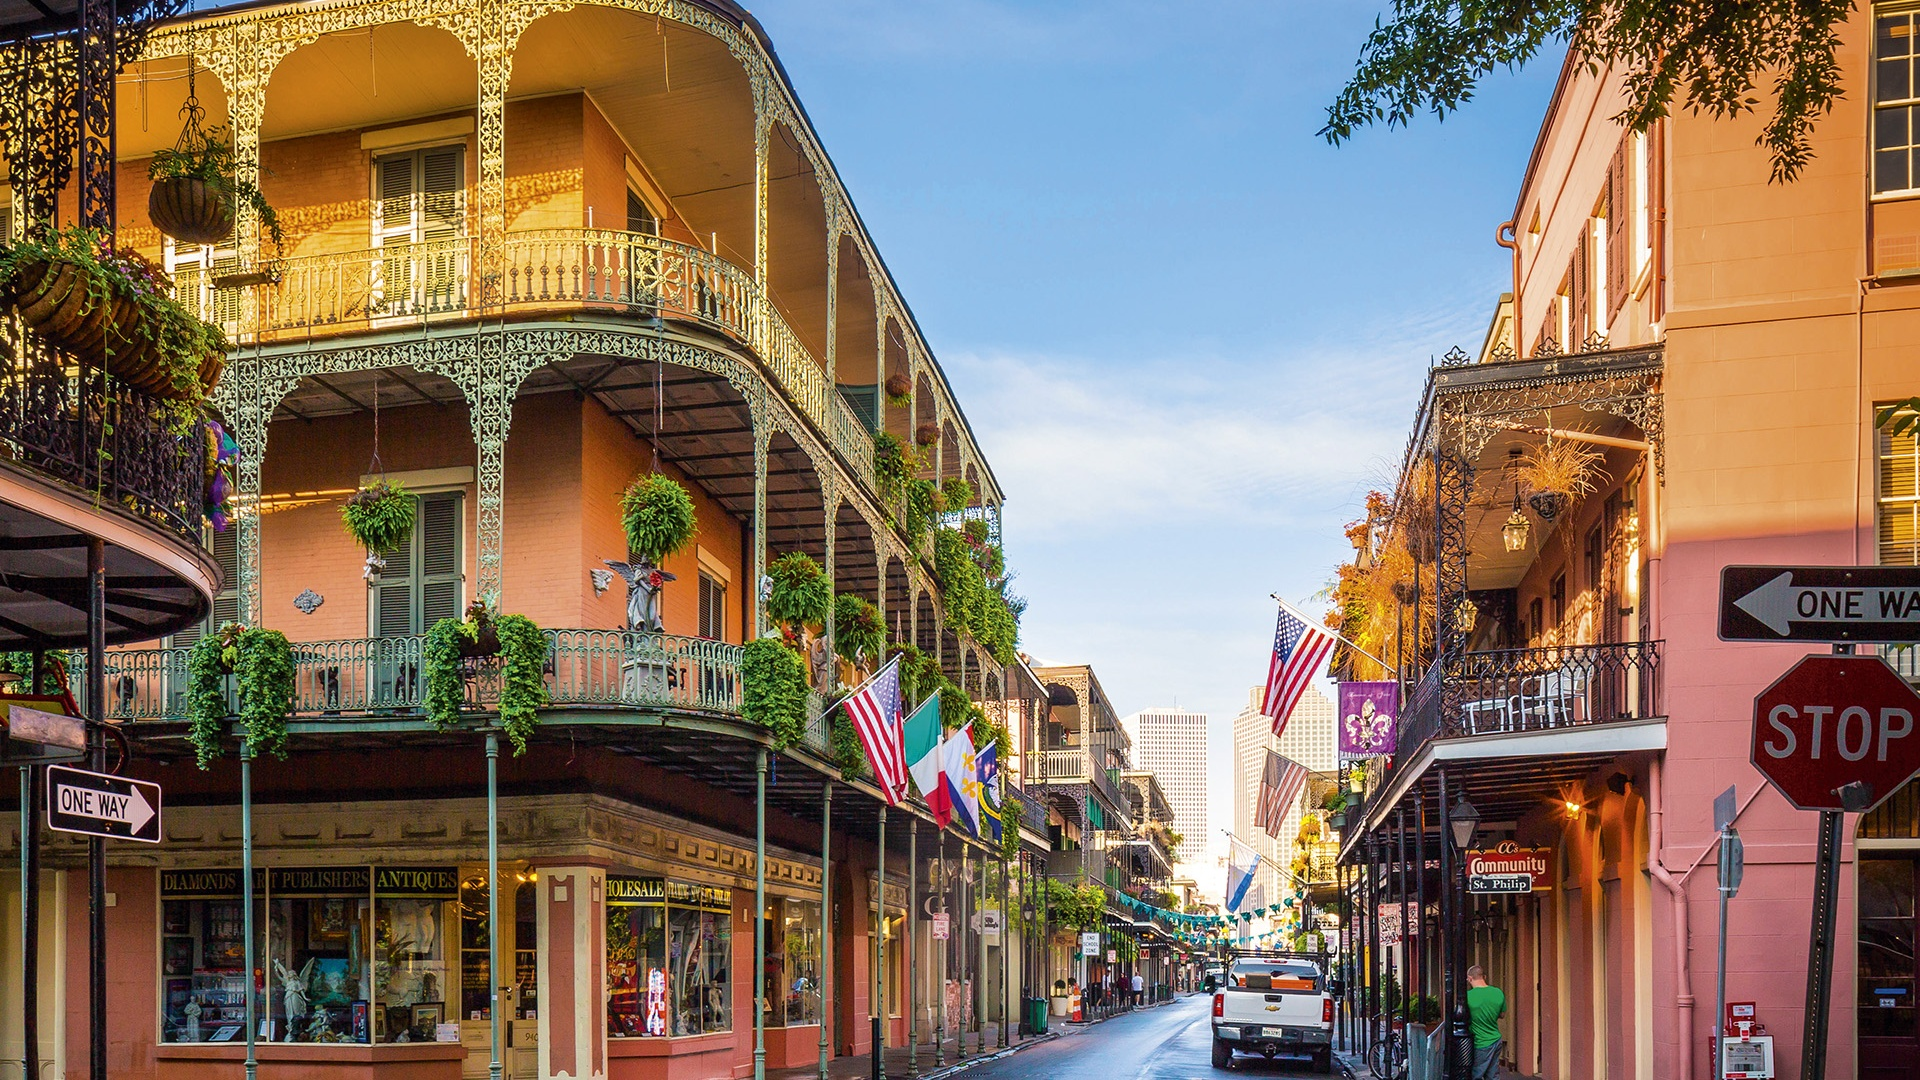 traditional buildings in the French Quarter, New Orleans, Lousiana